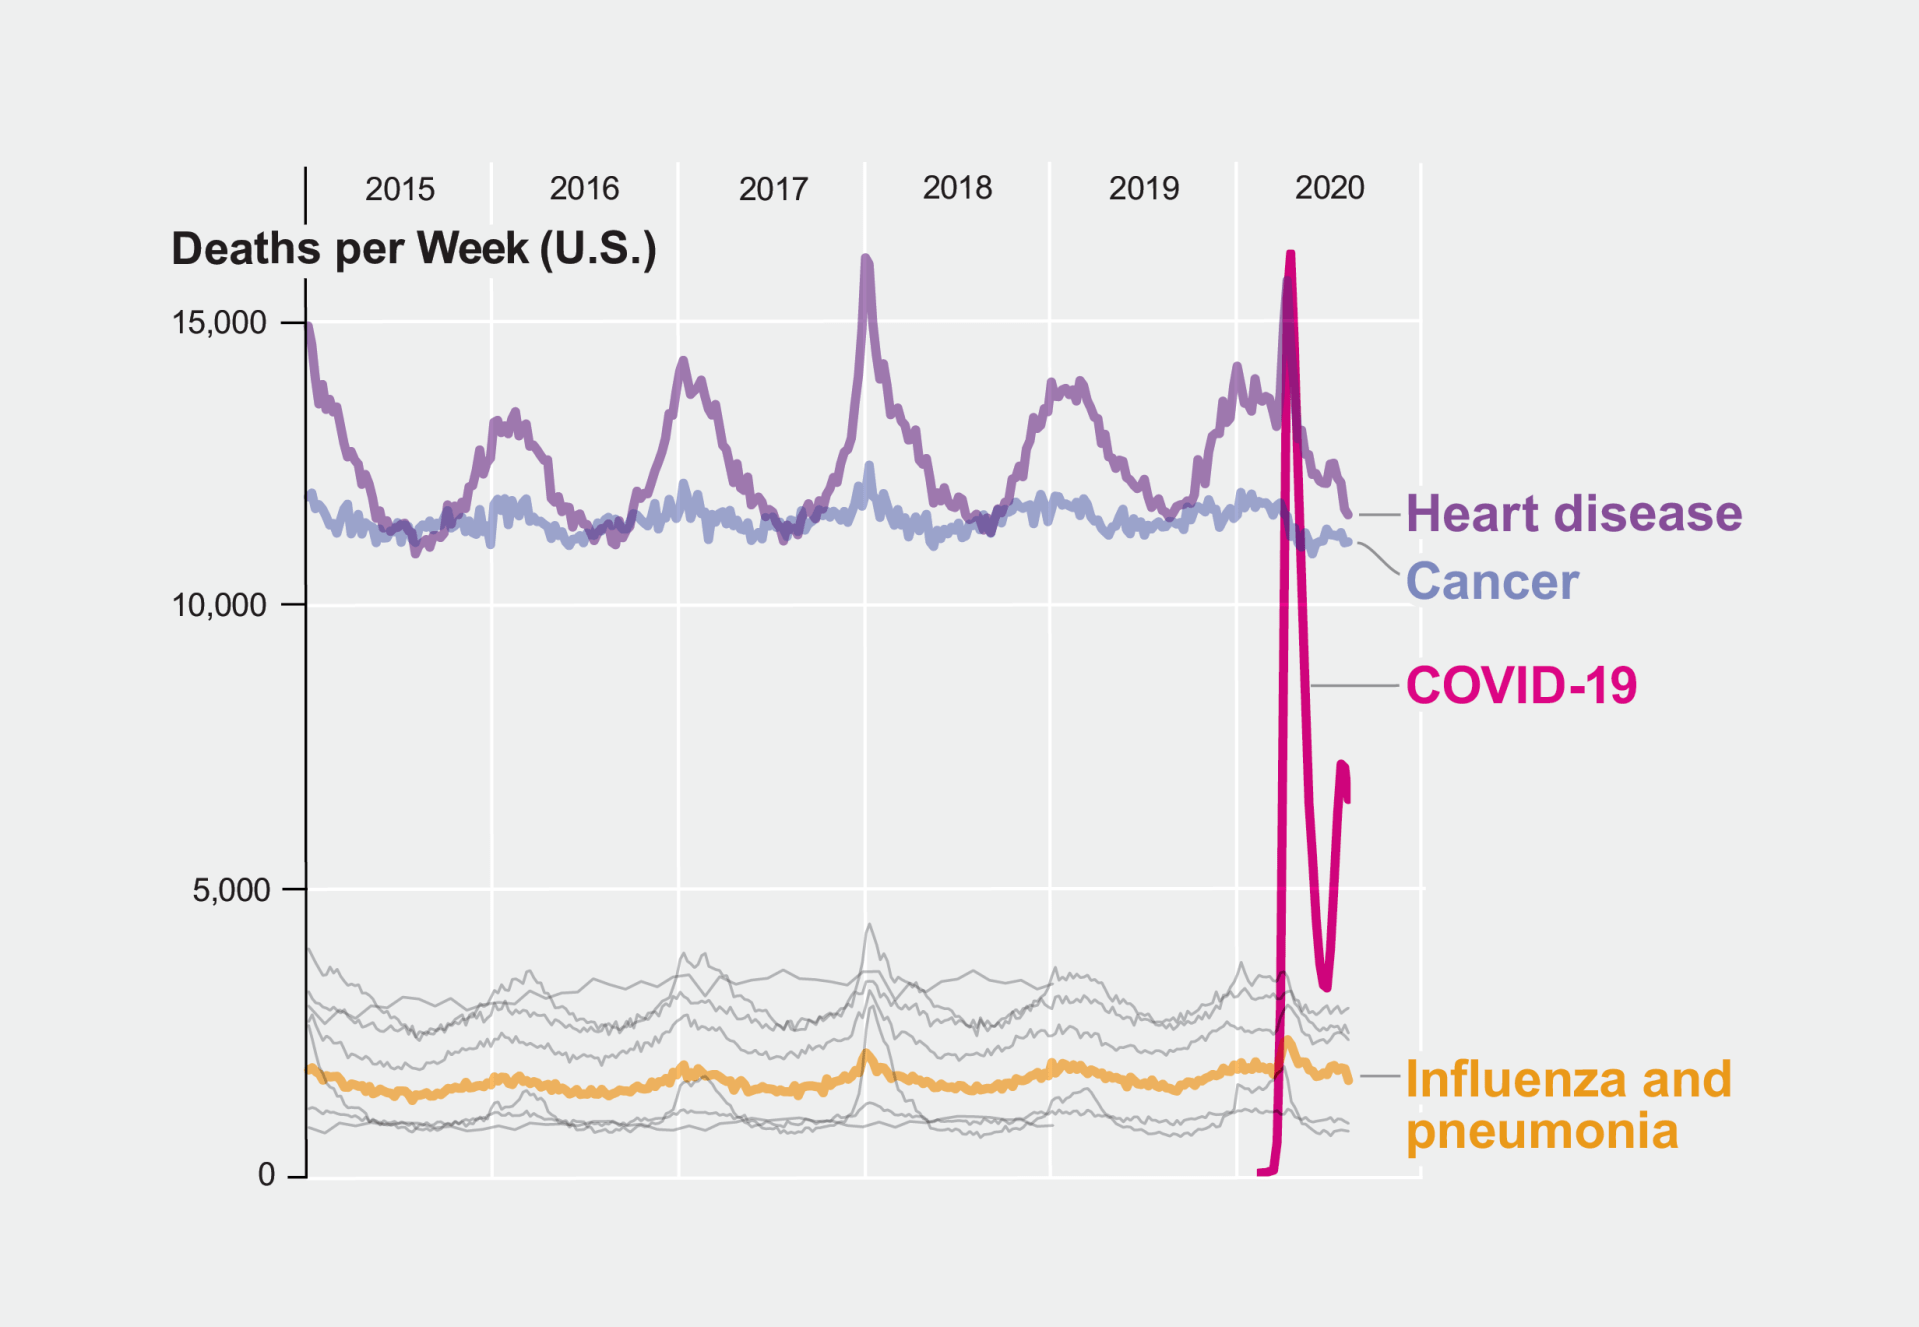 COVID-19 Is Now the Third Leading Cause of Death in the U.S.